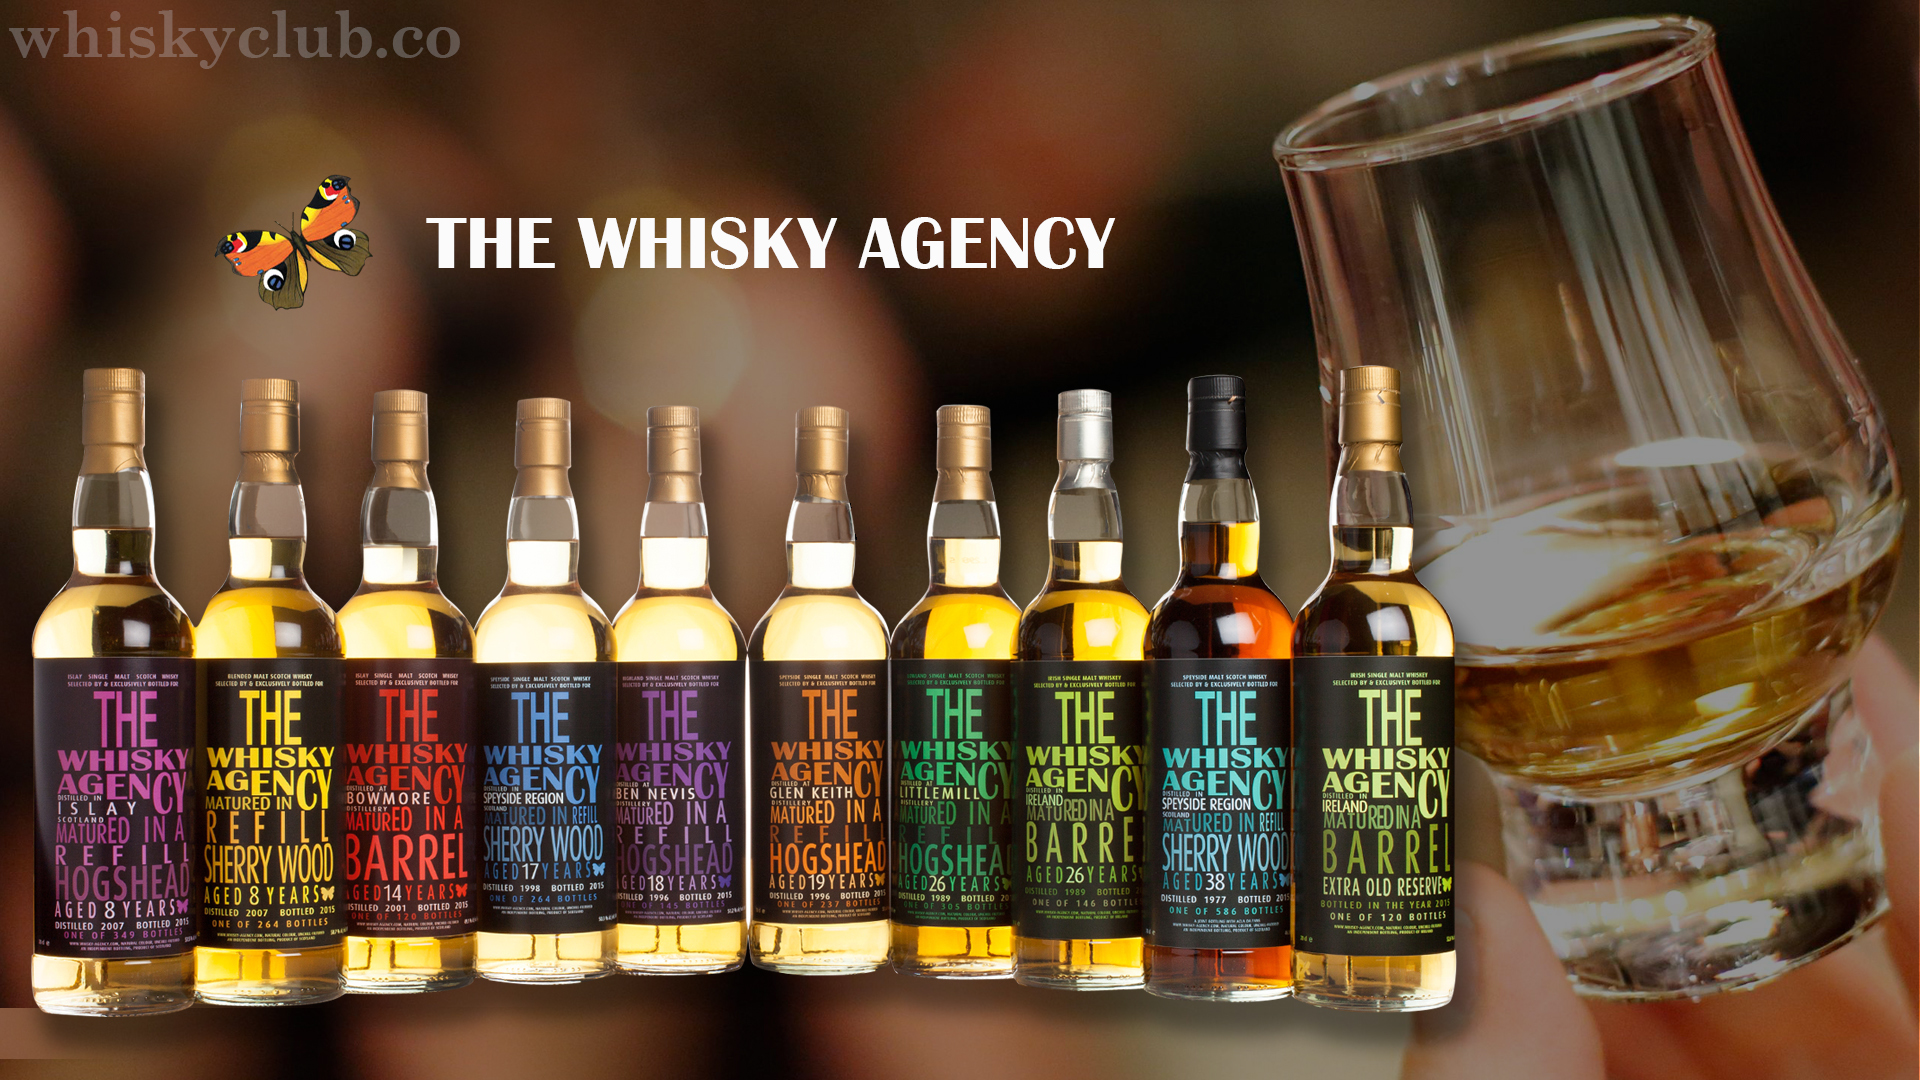 The whisky agency